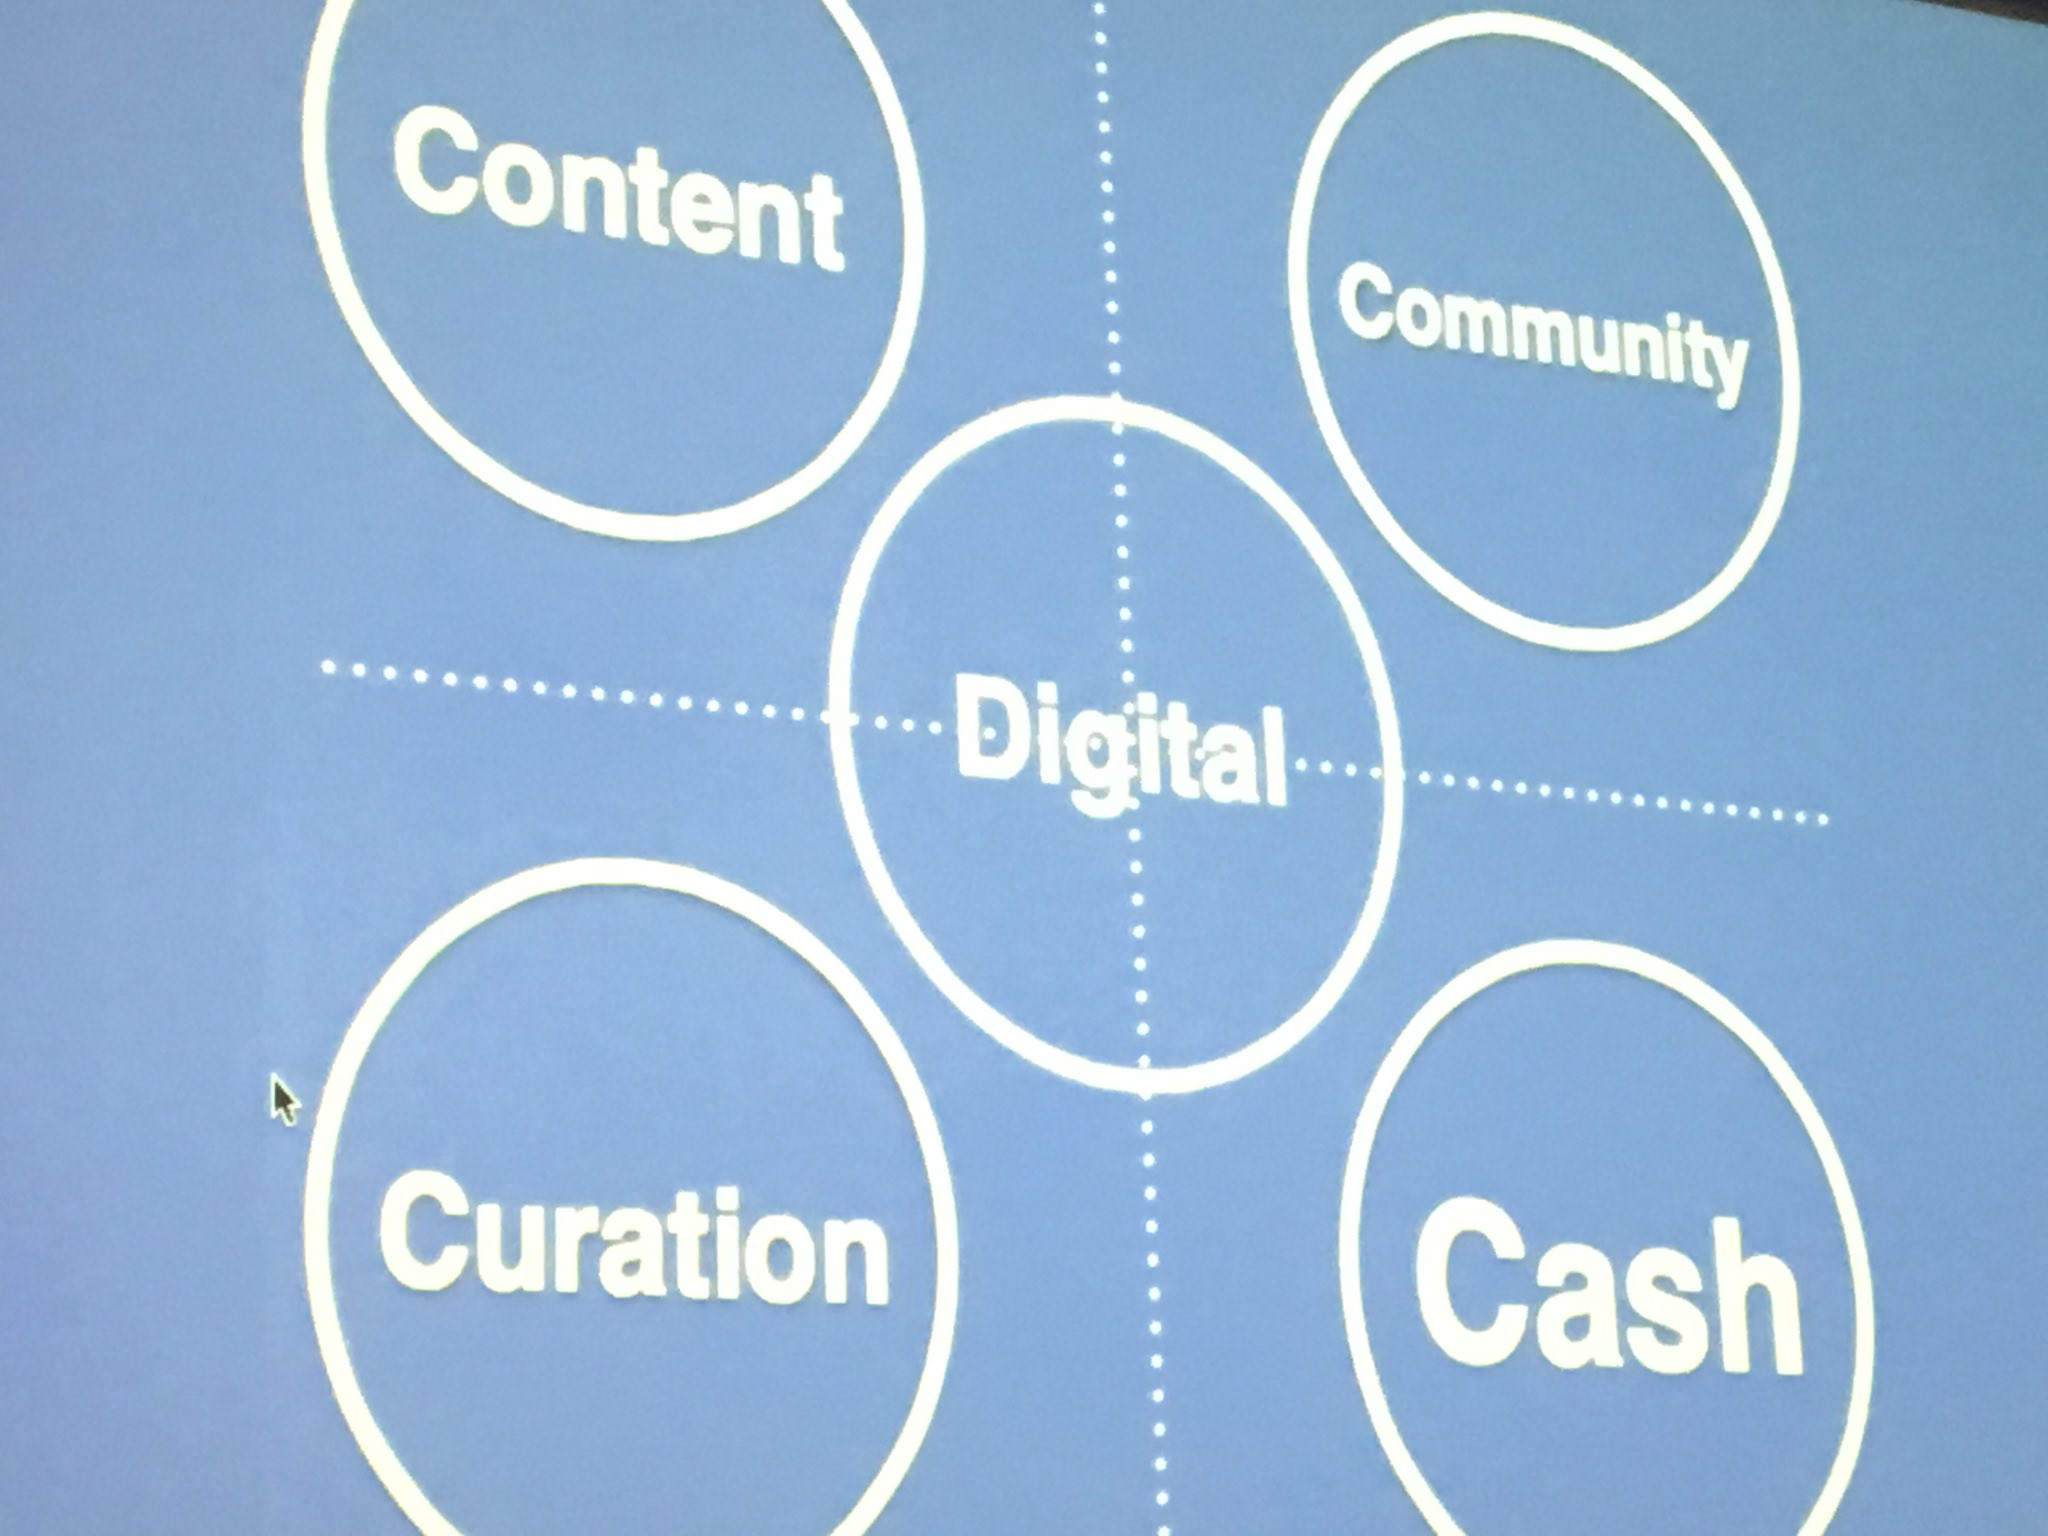 Digital allows people to go from spectators to owners of culture  @bfk #digitalglam @unimelb https://t.co/EFSSdElbV6